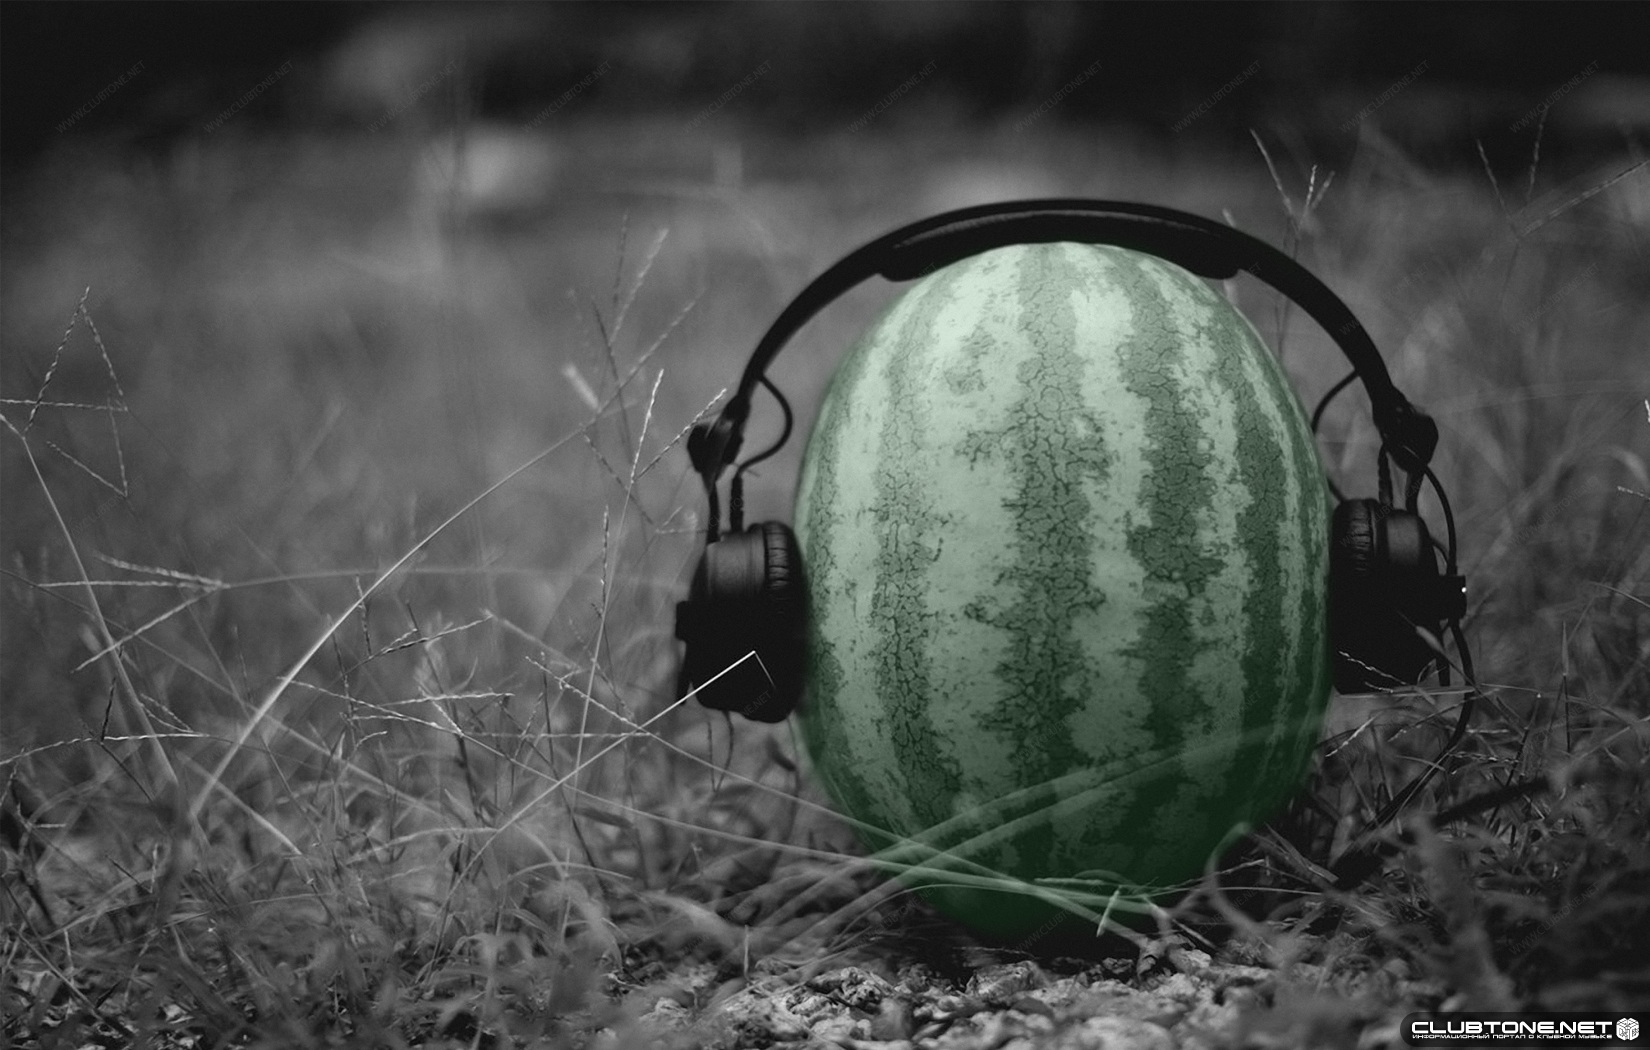 watermelon in ear-phones